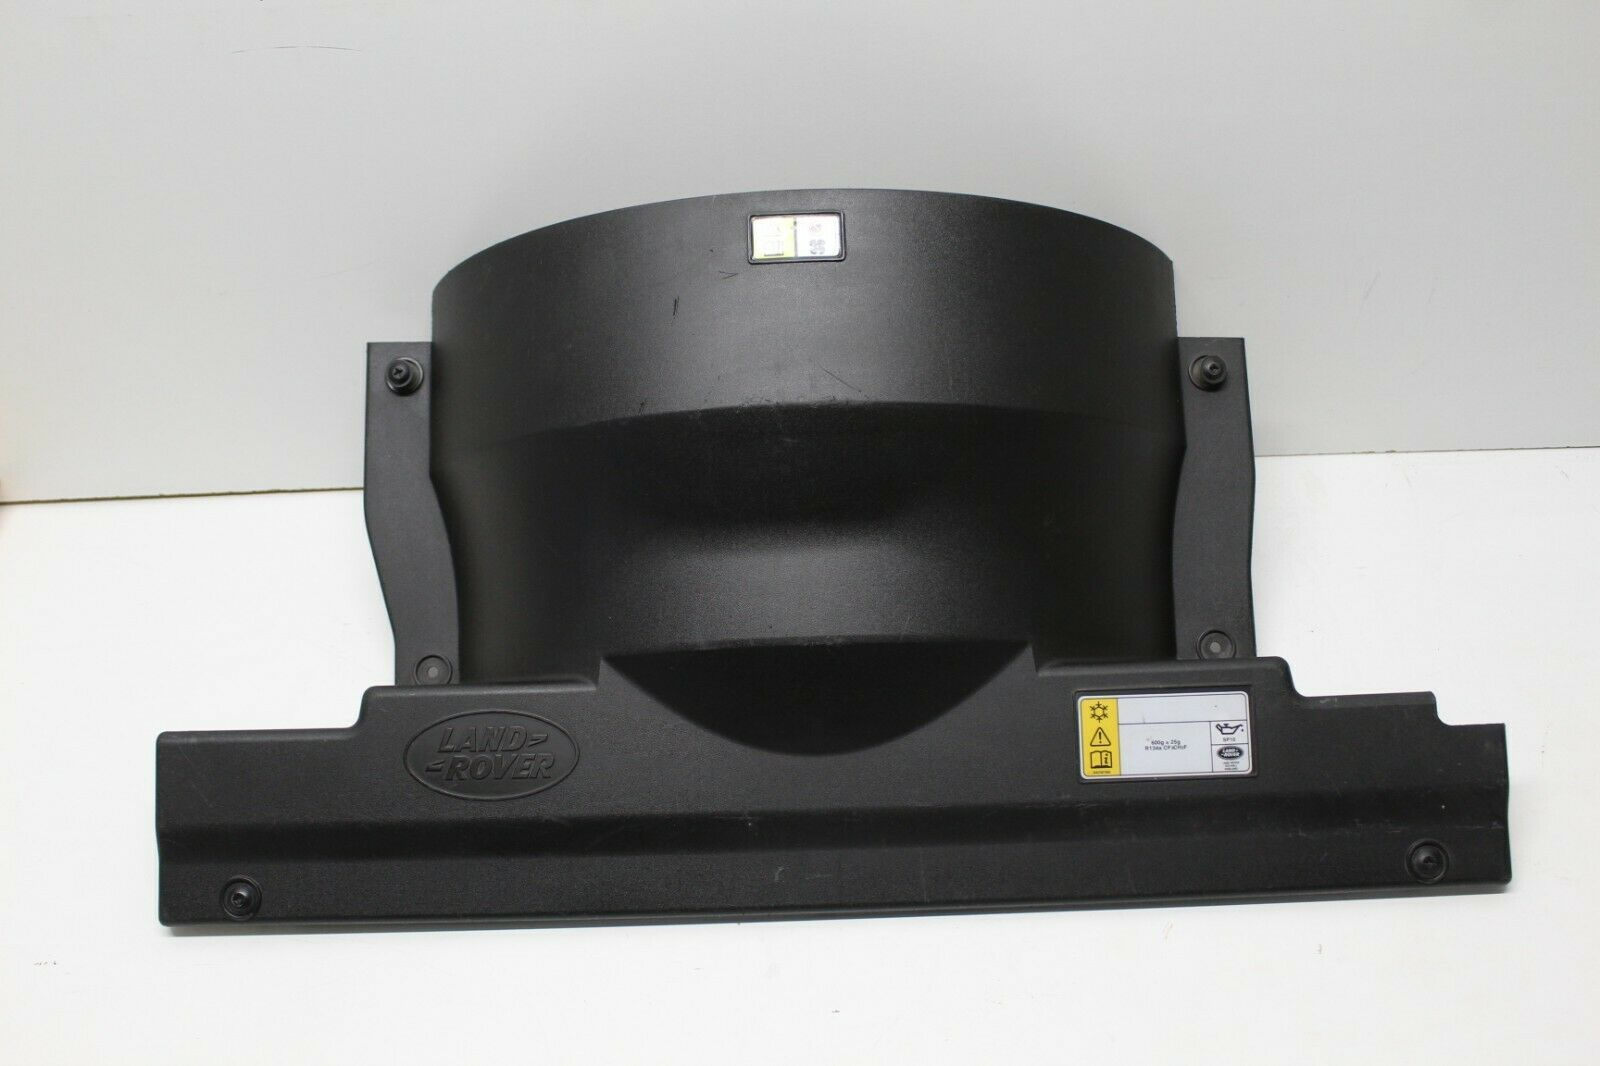 Land Rover Defender Tdci PUMA viscous fan upper and lower cowl cowling's featured image